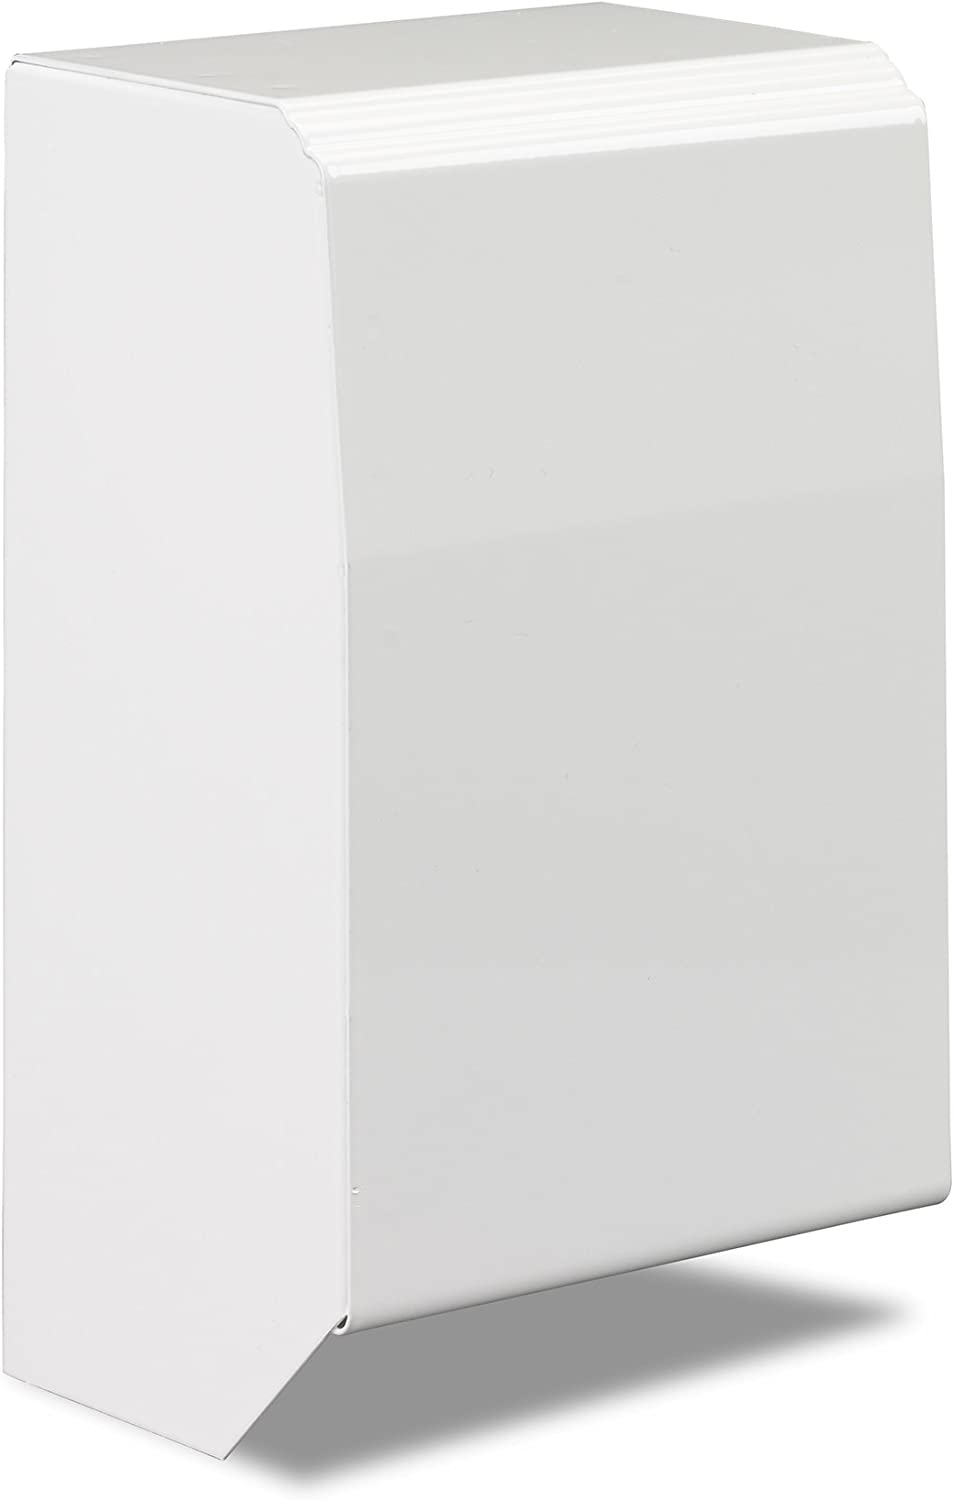 4 Inch End Cap Only for Slant/Fin Revital/Line Baseboard Heater Replacement Covers in Brite White